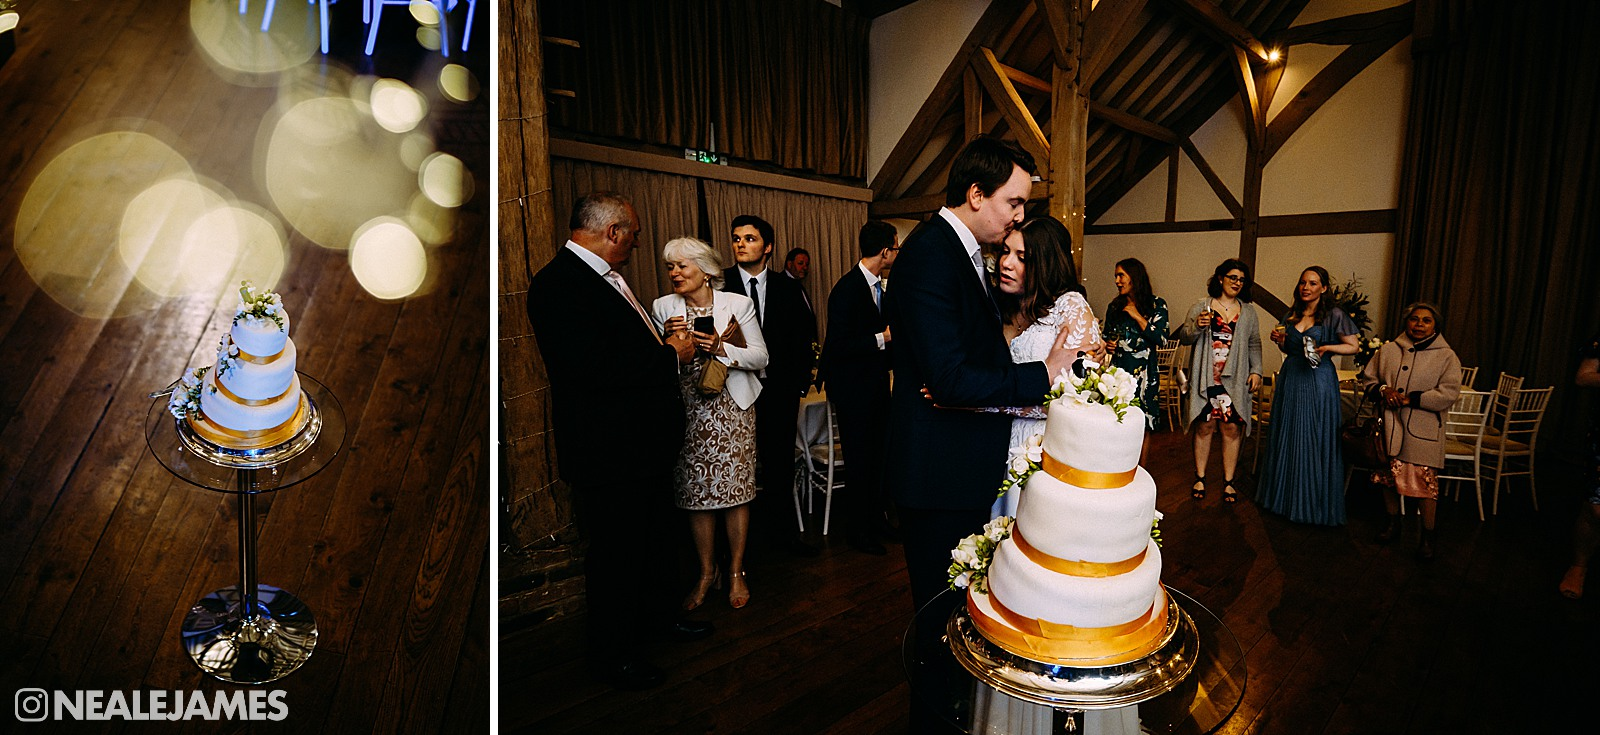 A bride and groom cutting a cake at Bijou wedding venue